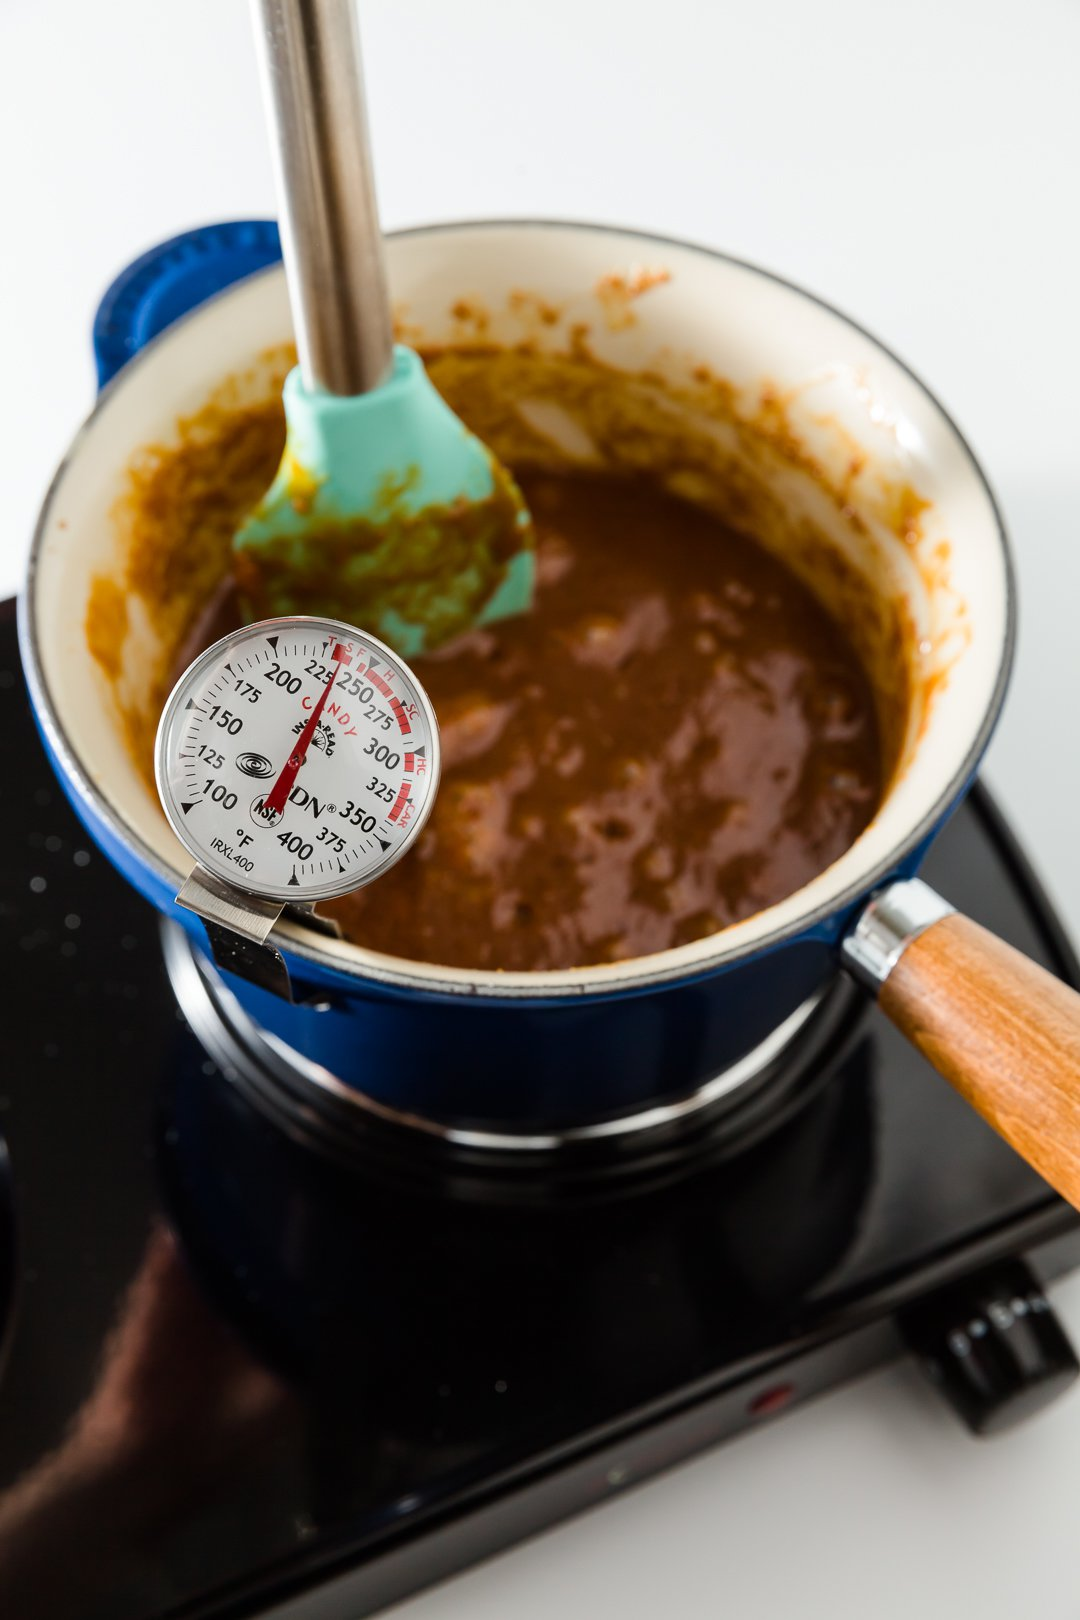 Caramel frosting cooking in a saucepan